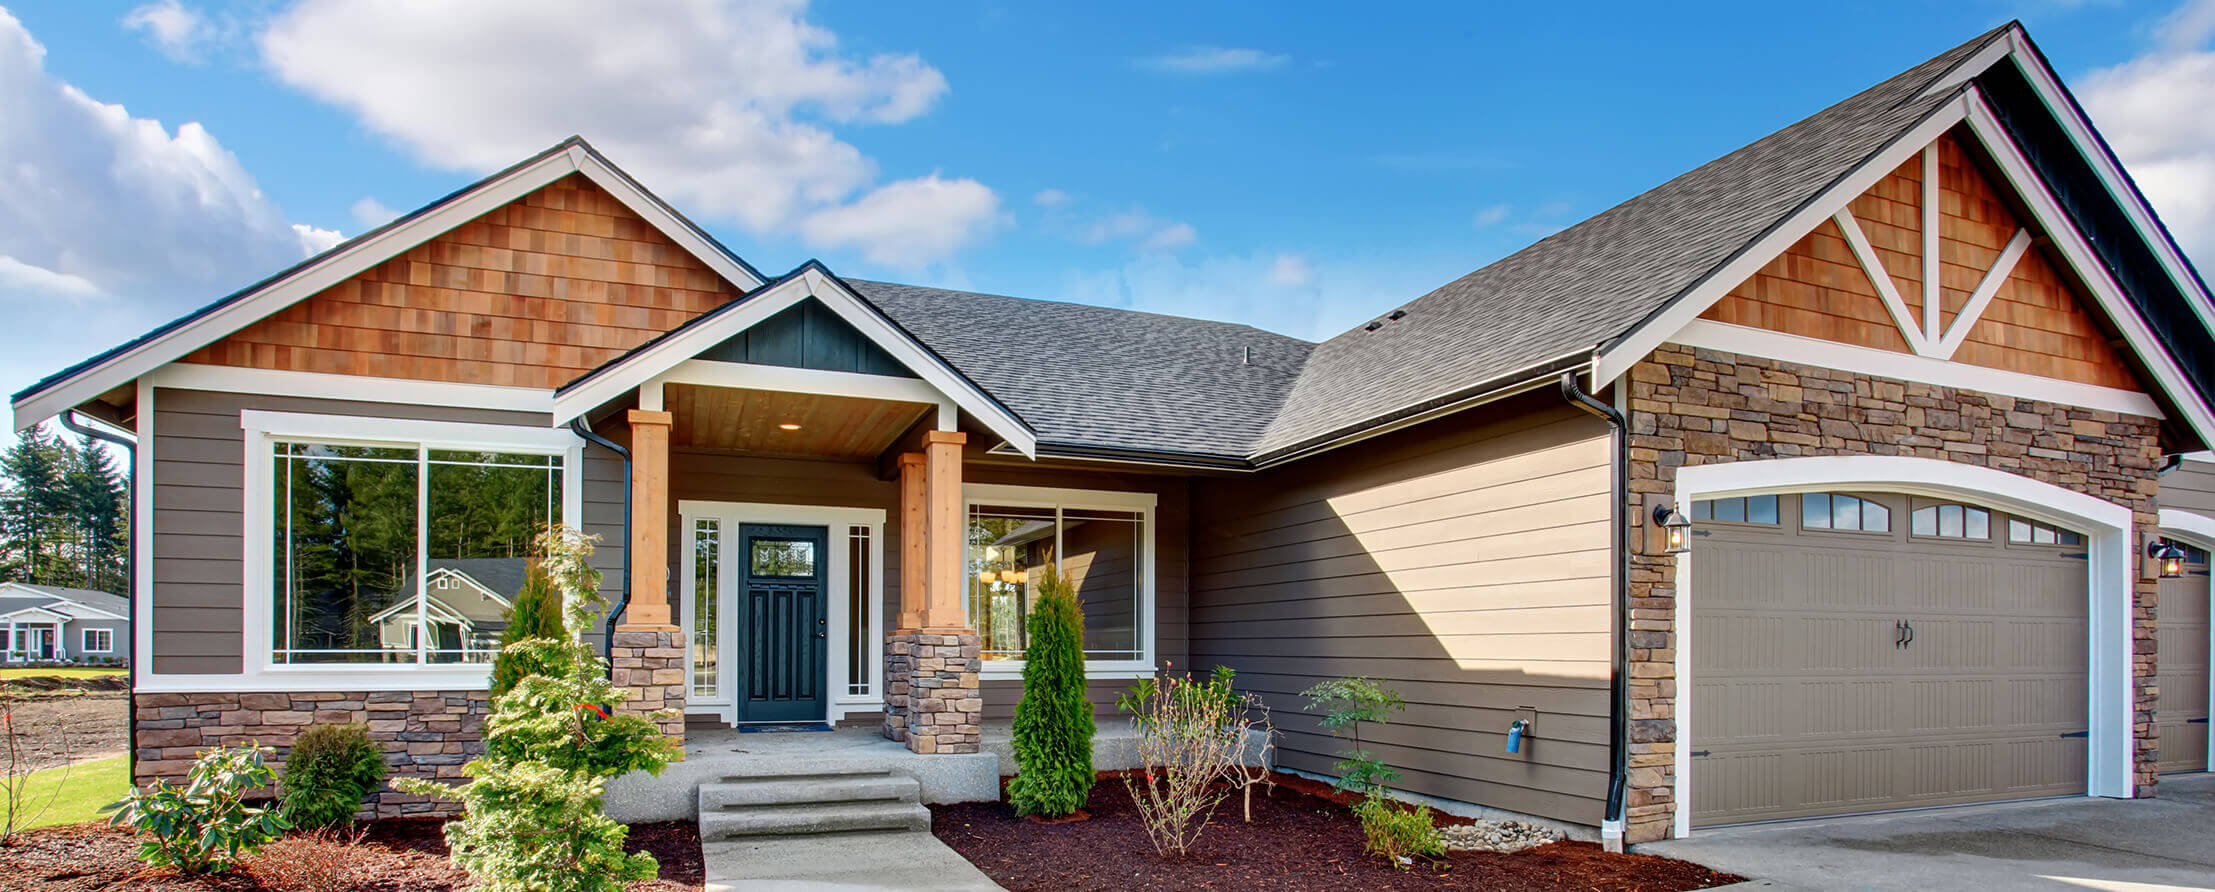 Newly built home with cedar shakes, vinyl siding, and stone facade and professional landscaped yard